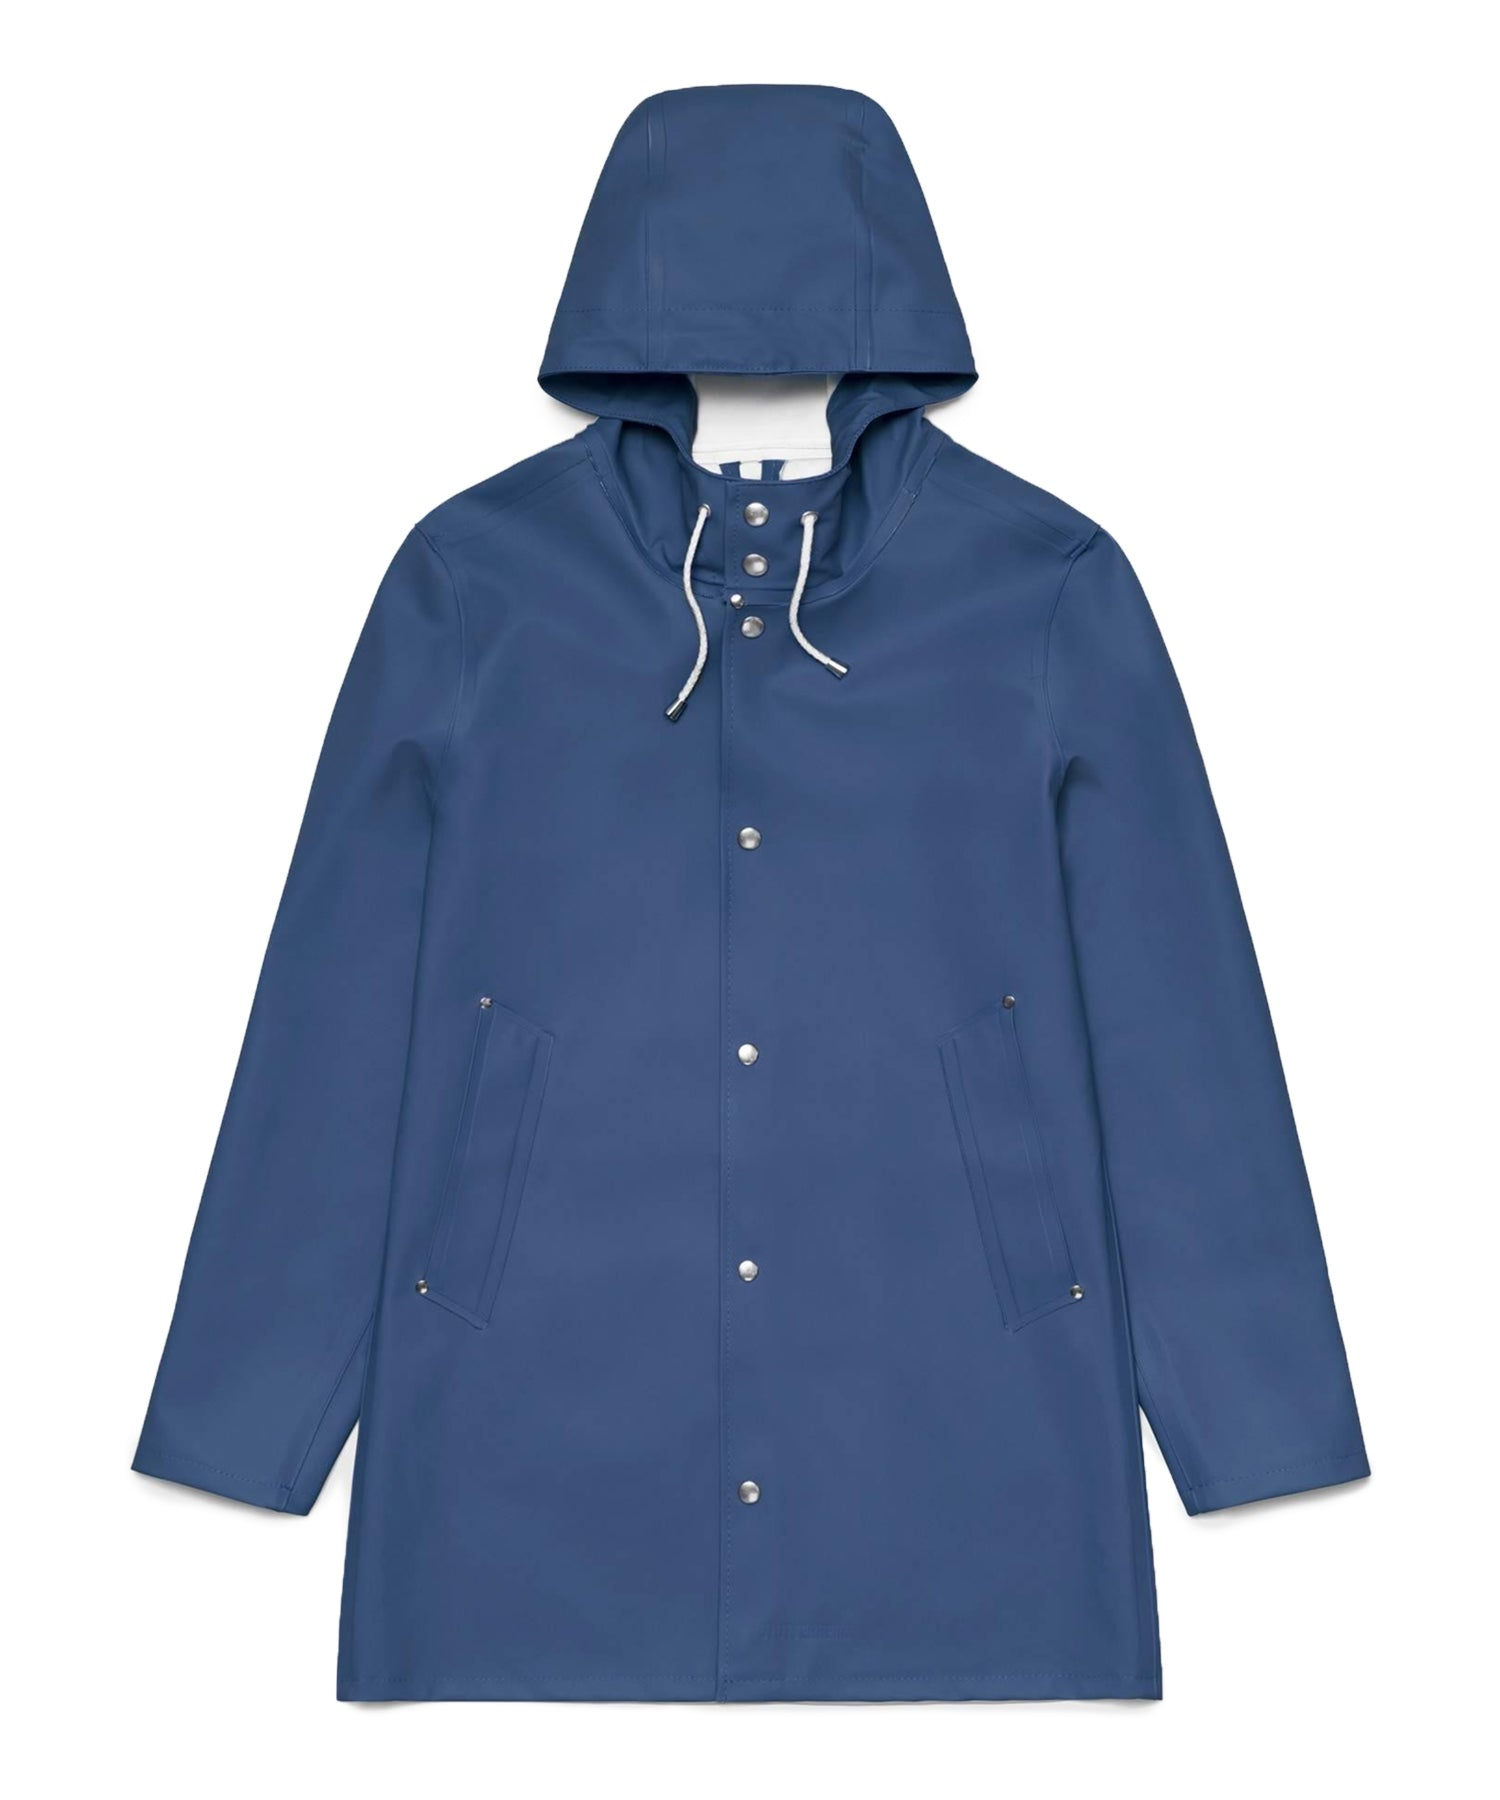 Stutterheim Stockholm Basic Raincoat Indigo